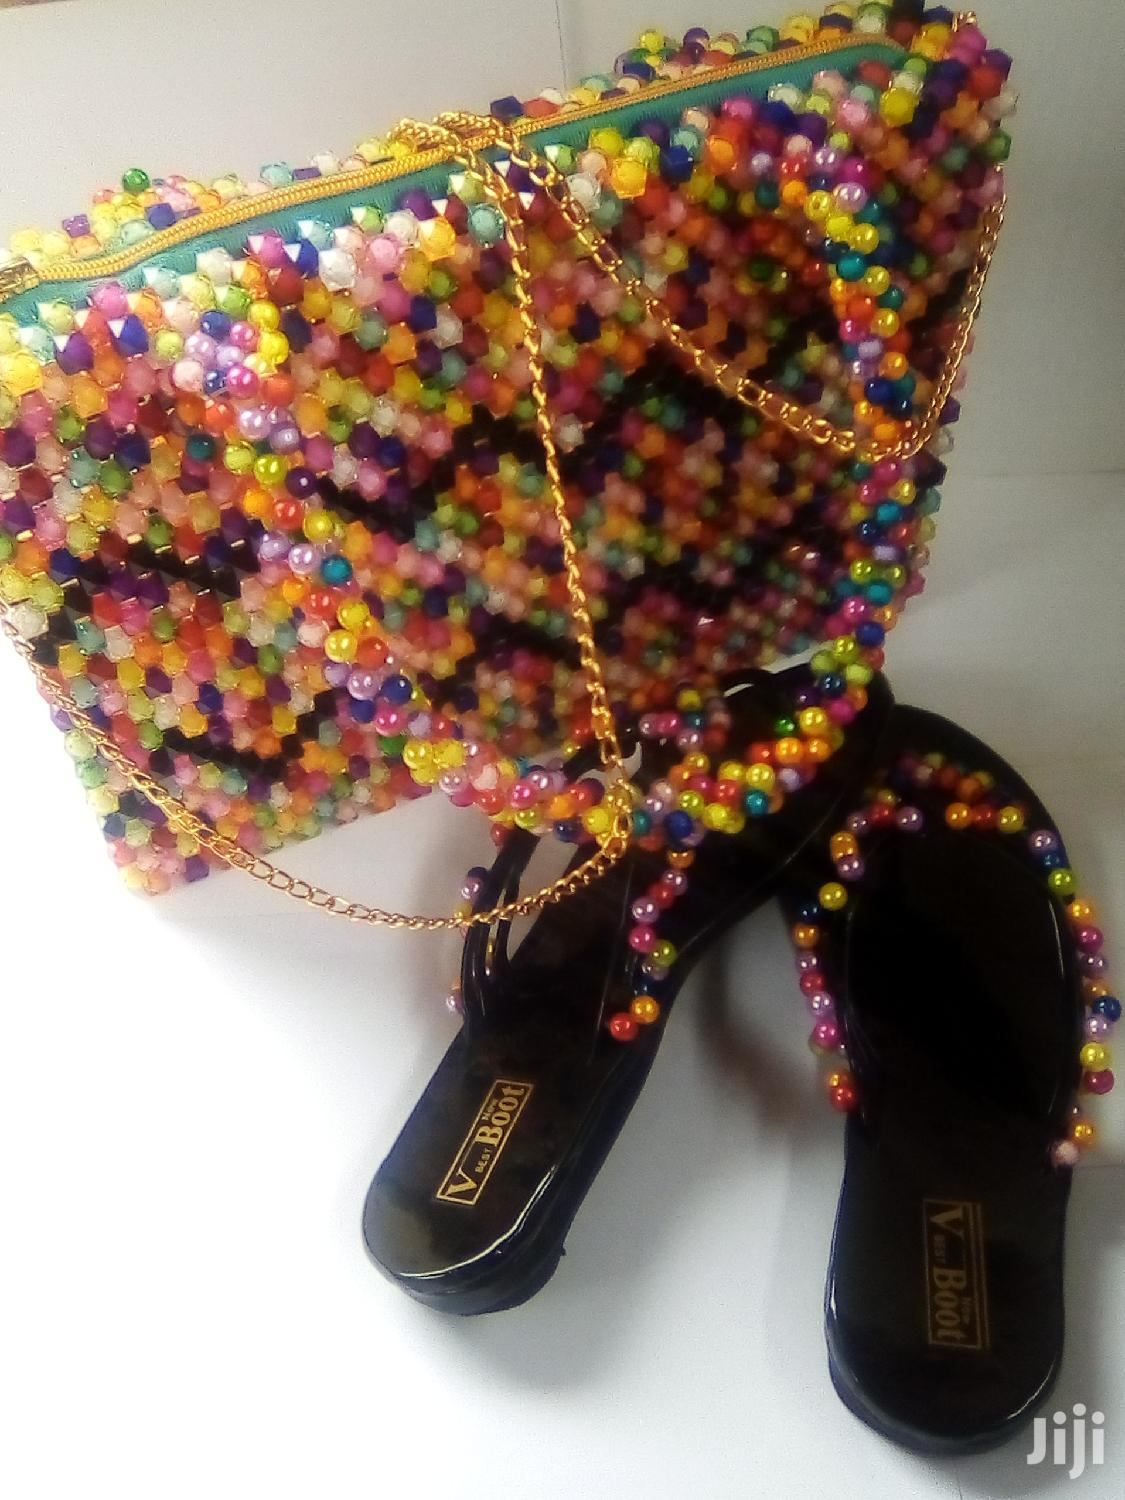 Beads Bag With Slippers